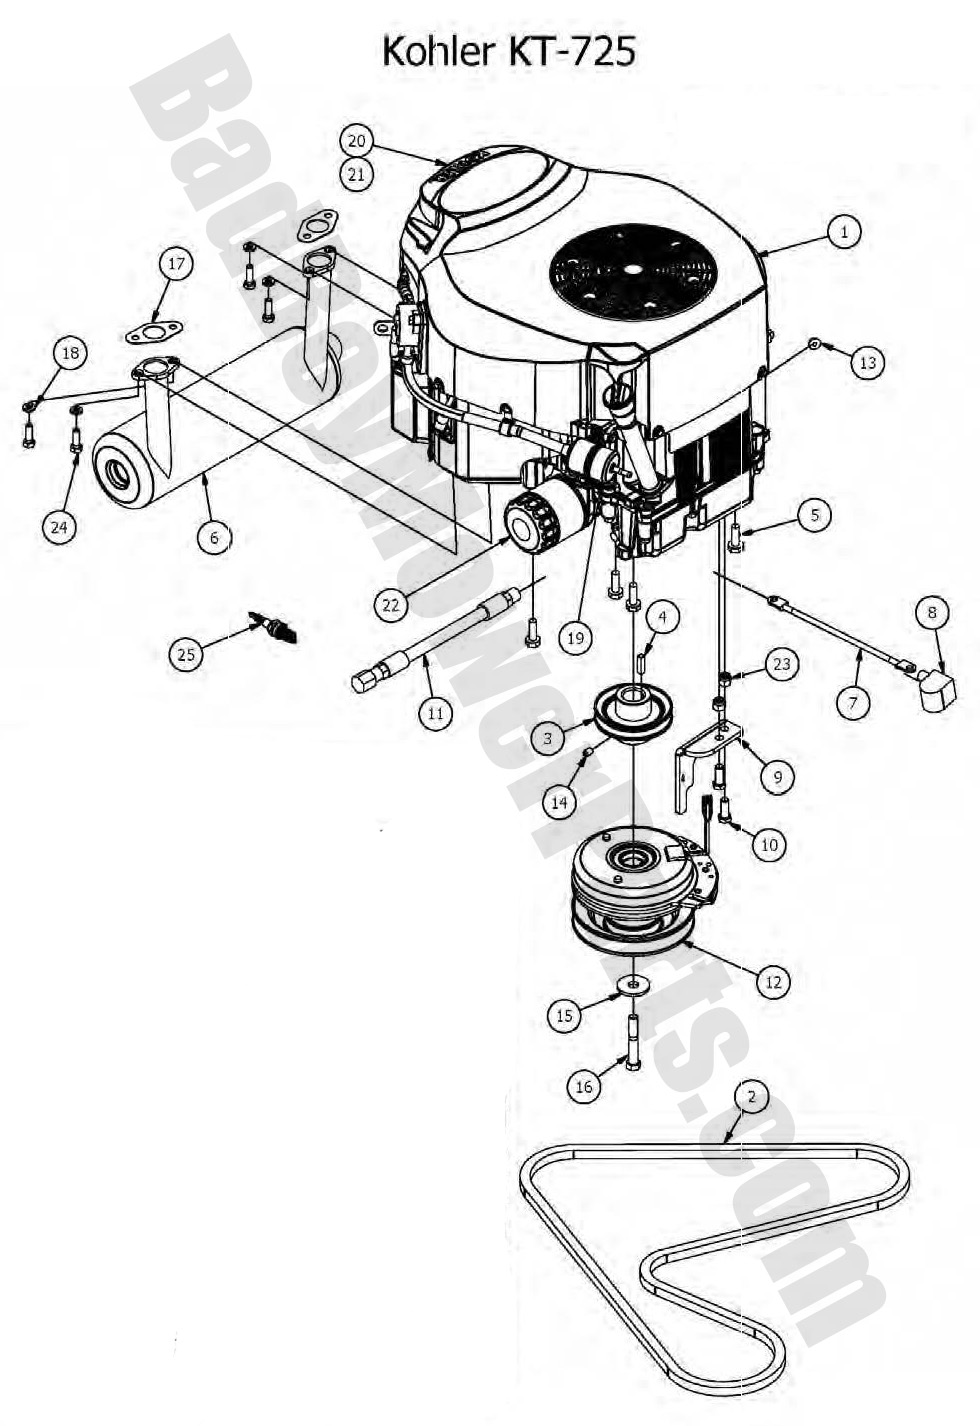 Kohler ch18 wiring diagram furthermore ignition charging group ch440 3118 ch440 in addition generator wiring diagram